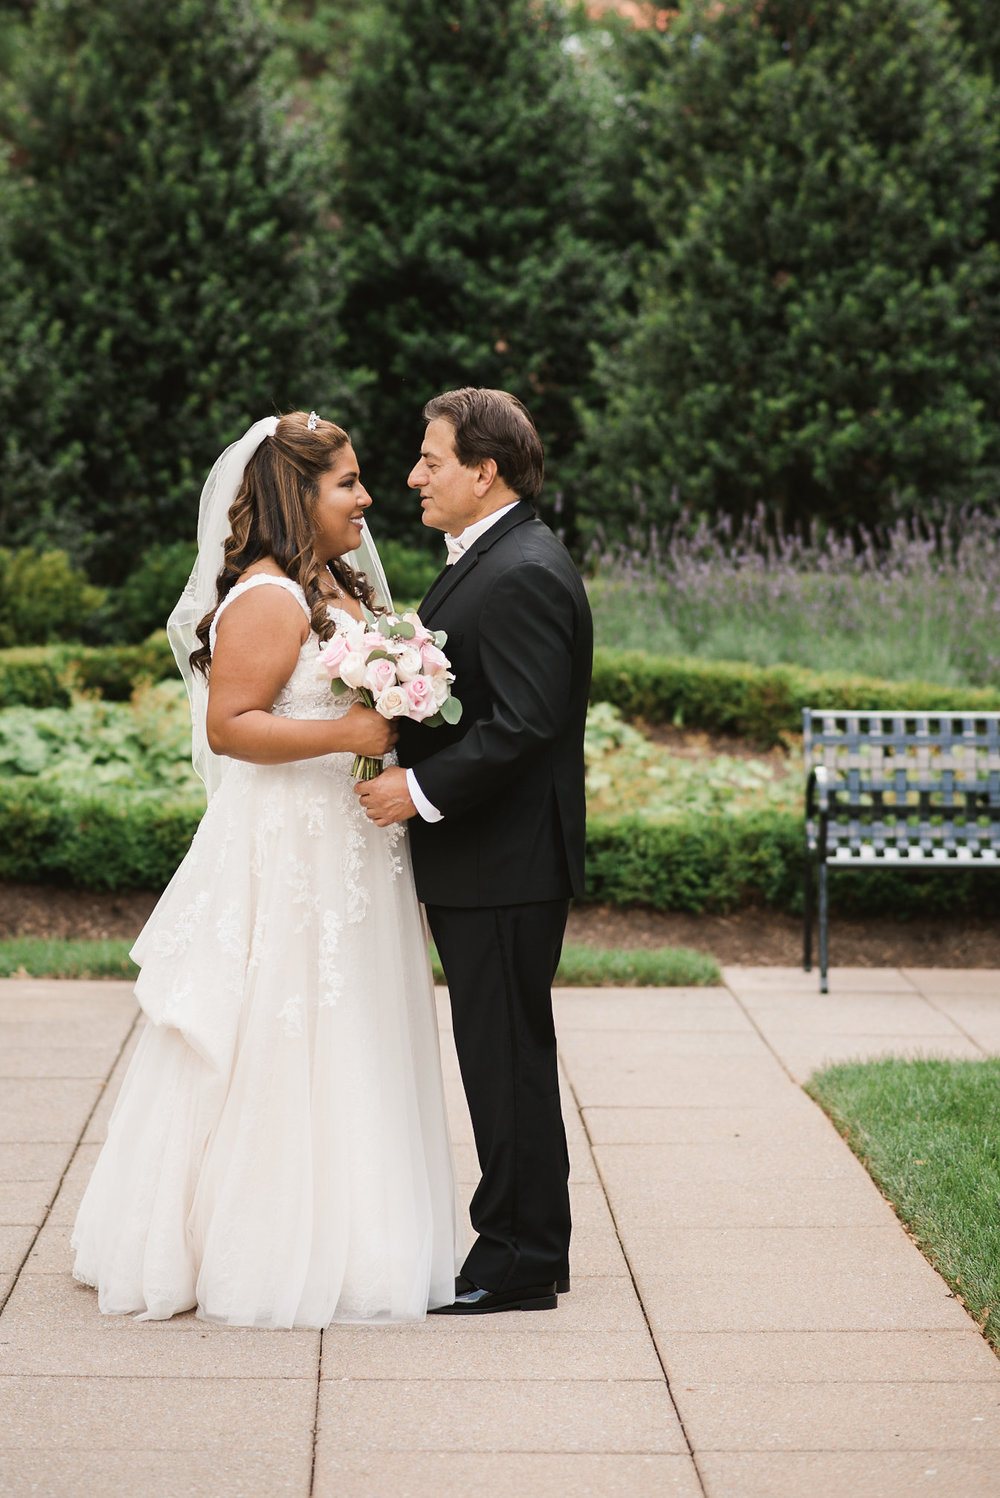 Bride and groom facing one another in courtyard